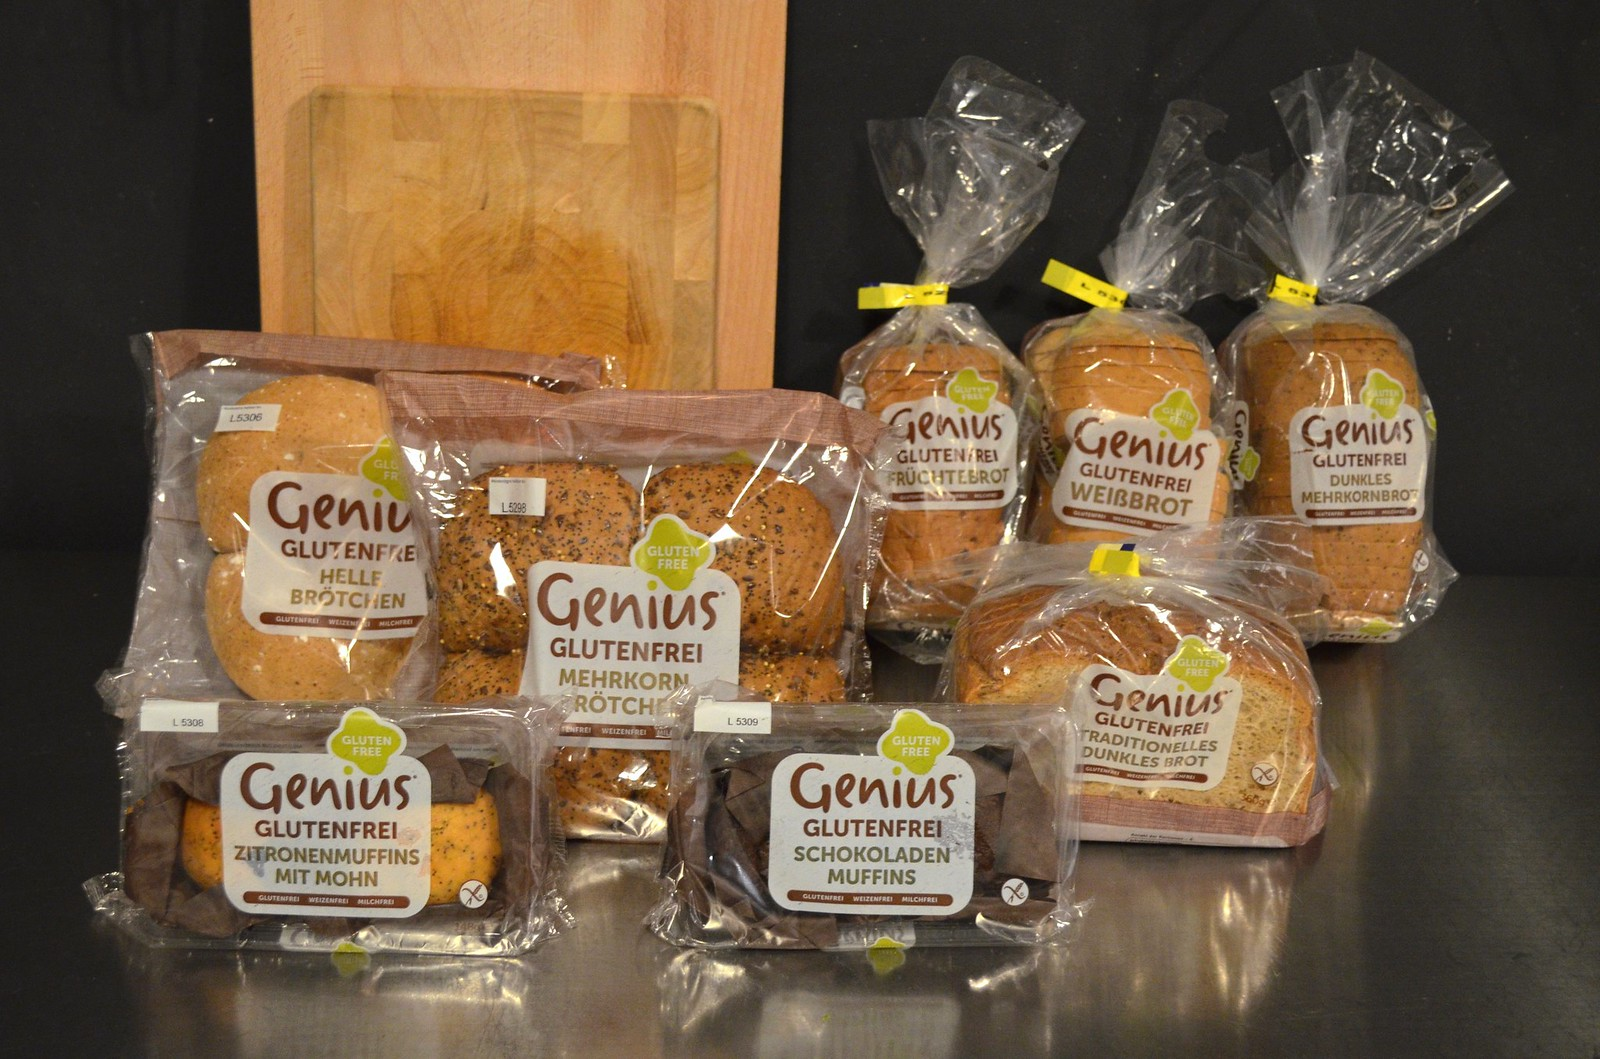 Genius Gluten Free German bread assortment review